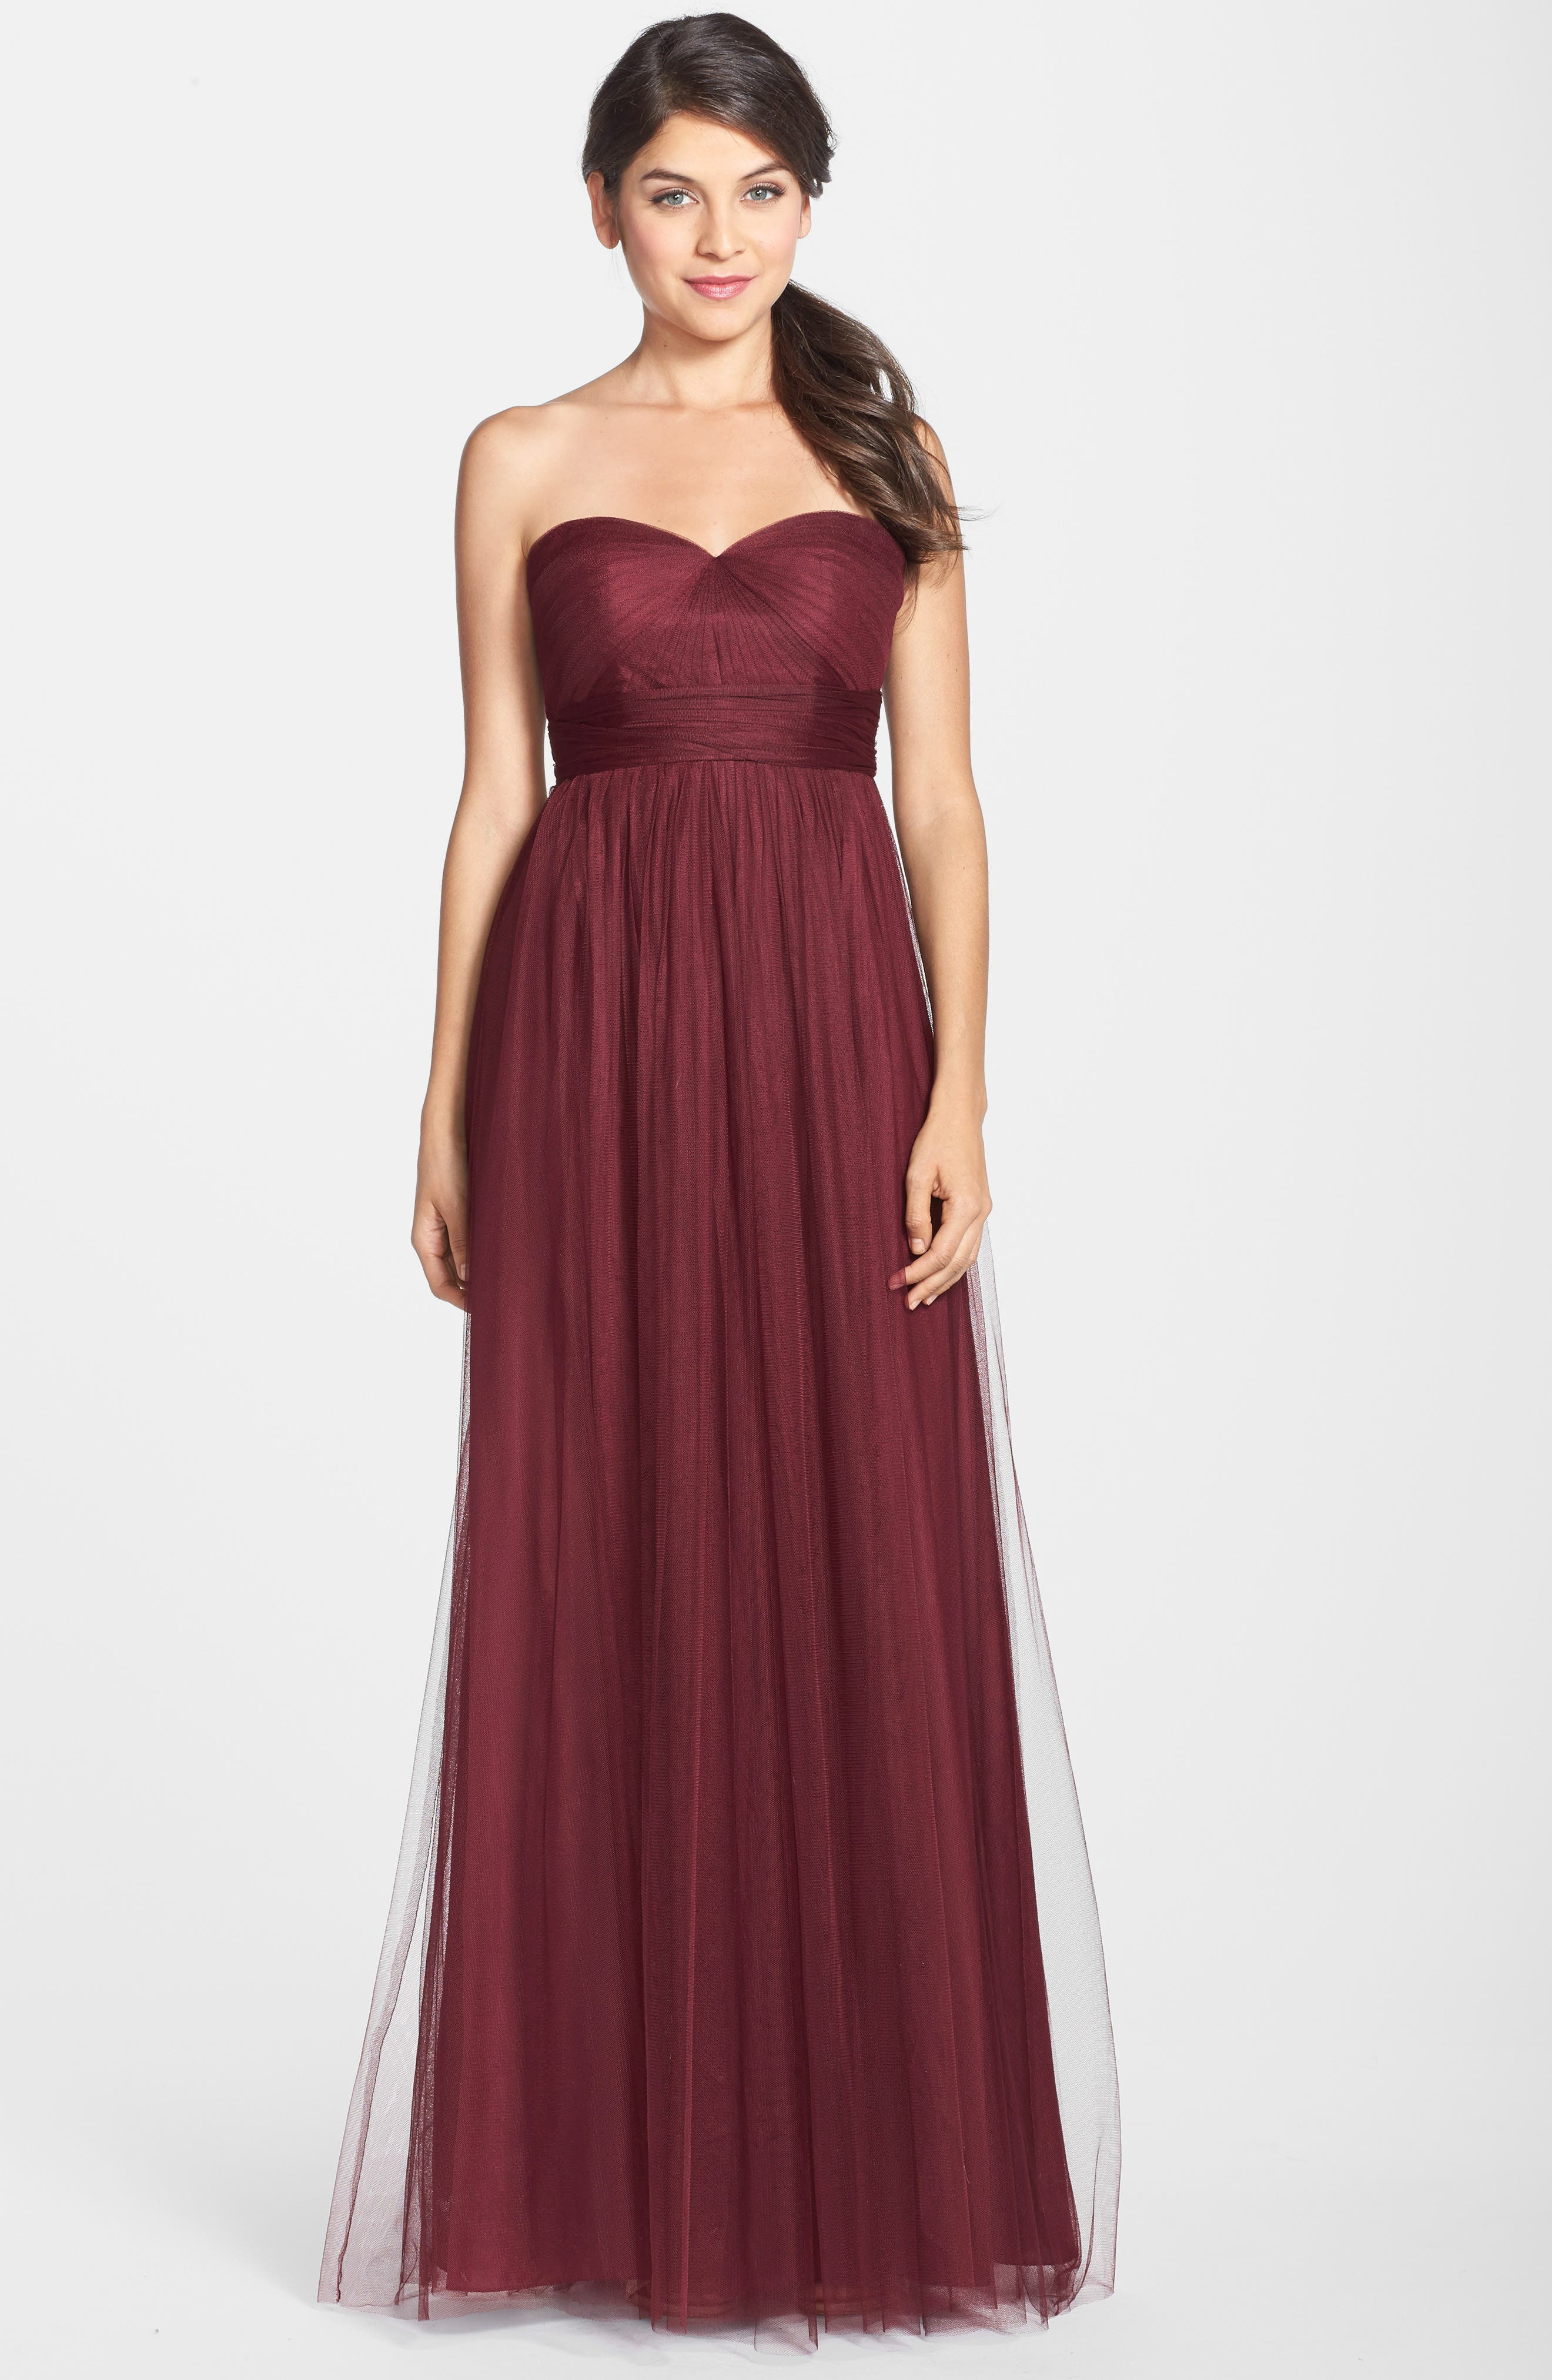 Annabelle Convertible Tulle Column Dress,                             Alternate thumbnail 73, color,